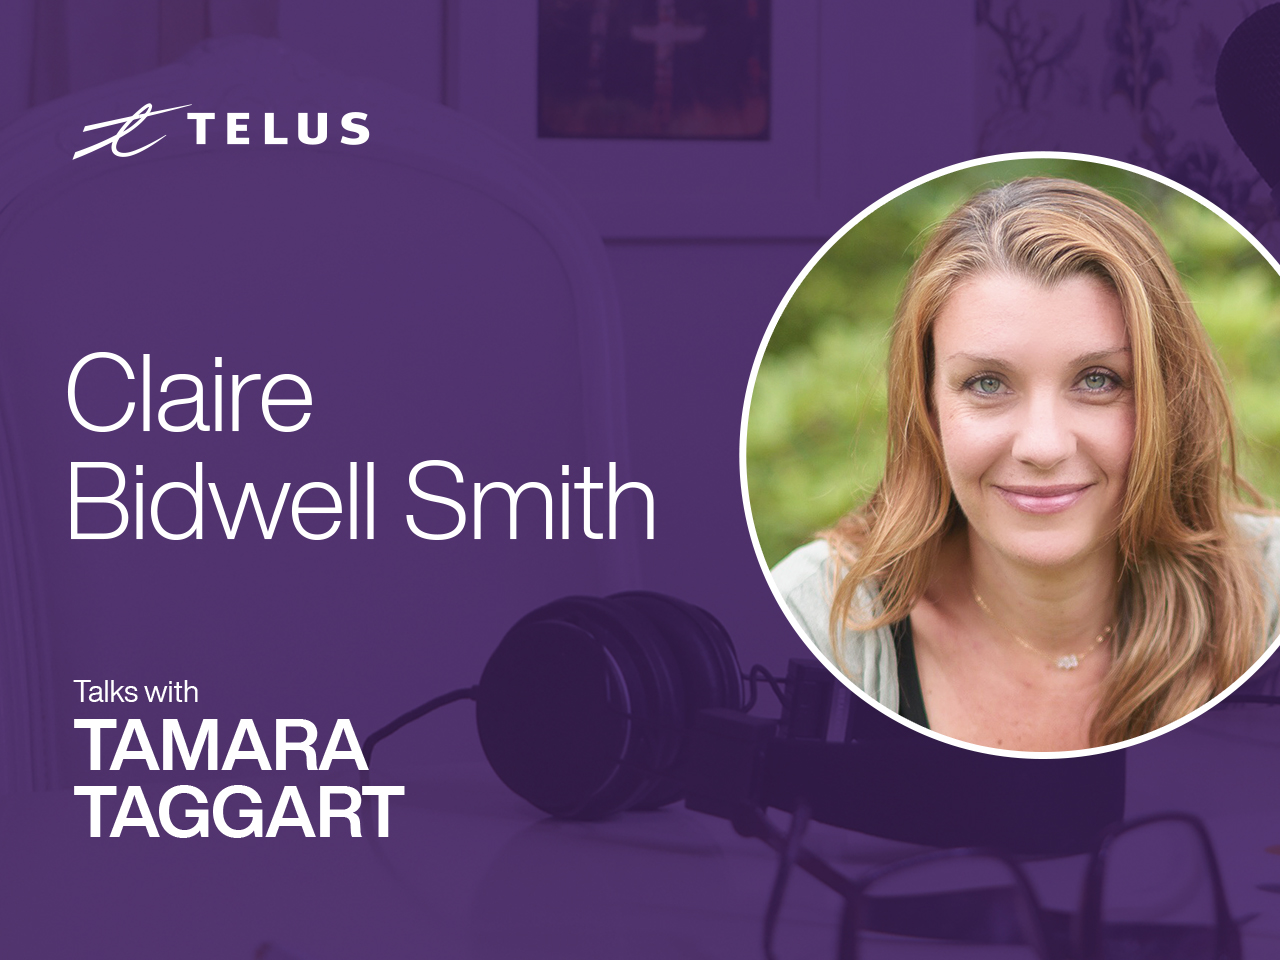 Grief expert and author Claire Bidwell Smith